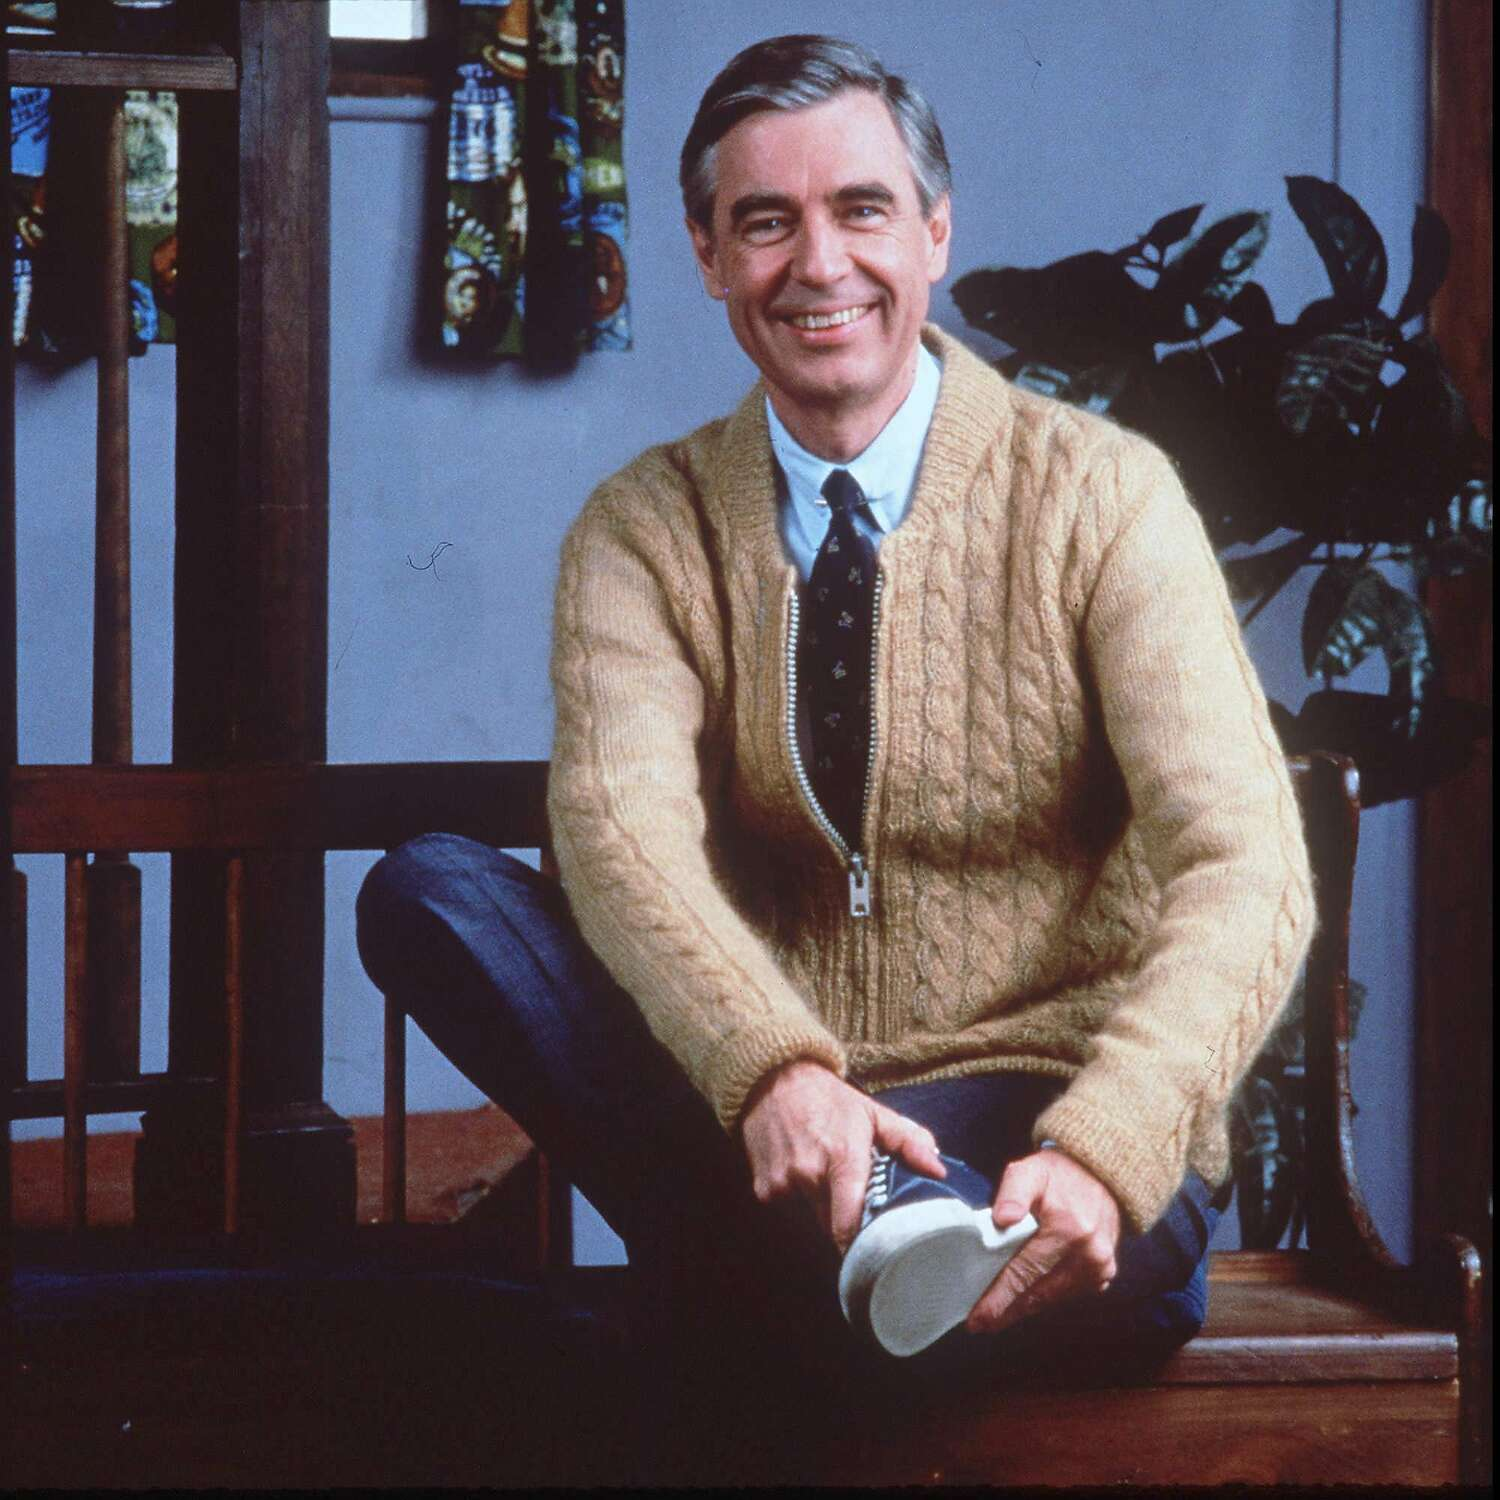 American TV personality Fred Rogers sits wearing a tan zip-up sweater over a shirt and tie with gray slacks.